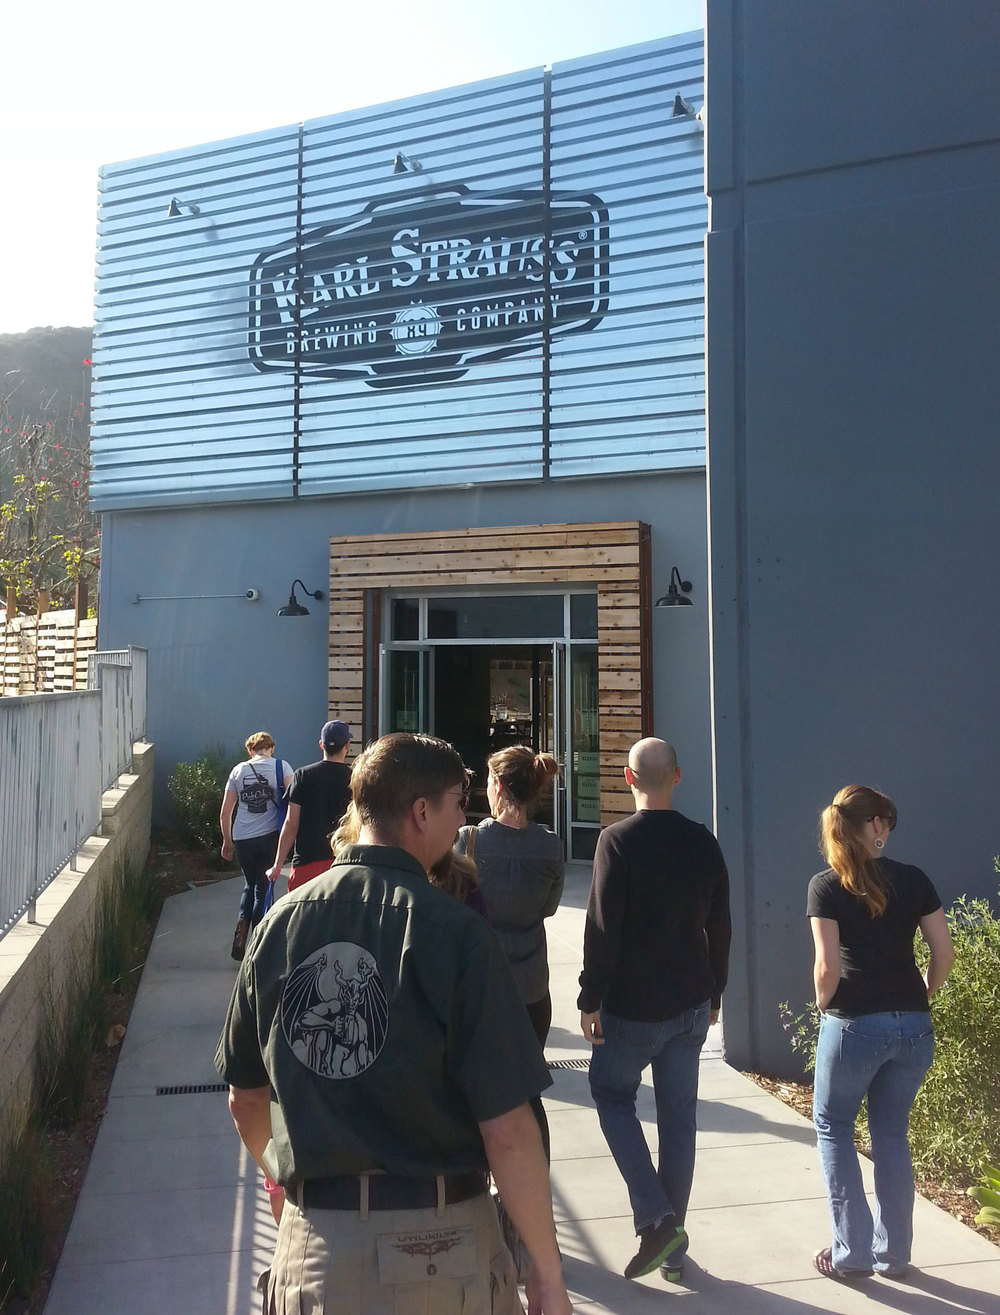 karl strauss tasting room - and main brewery